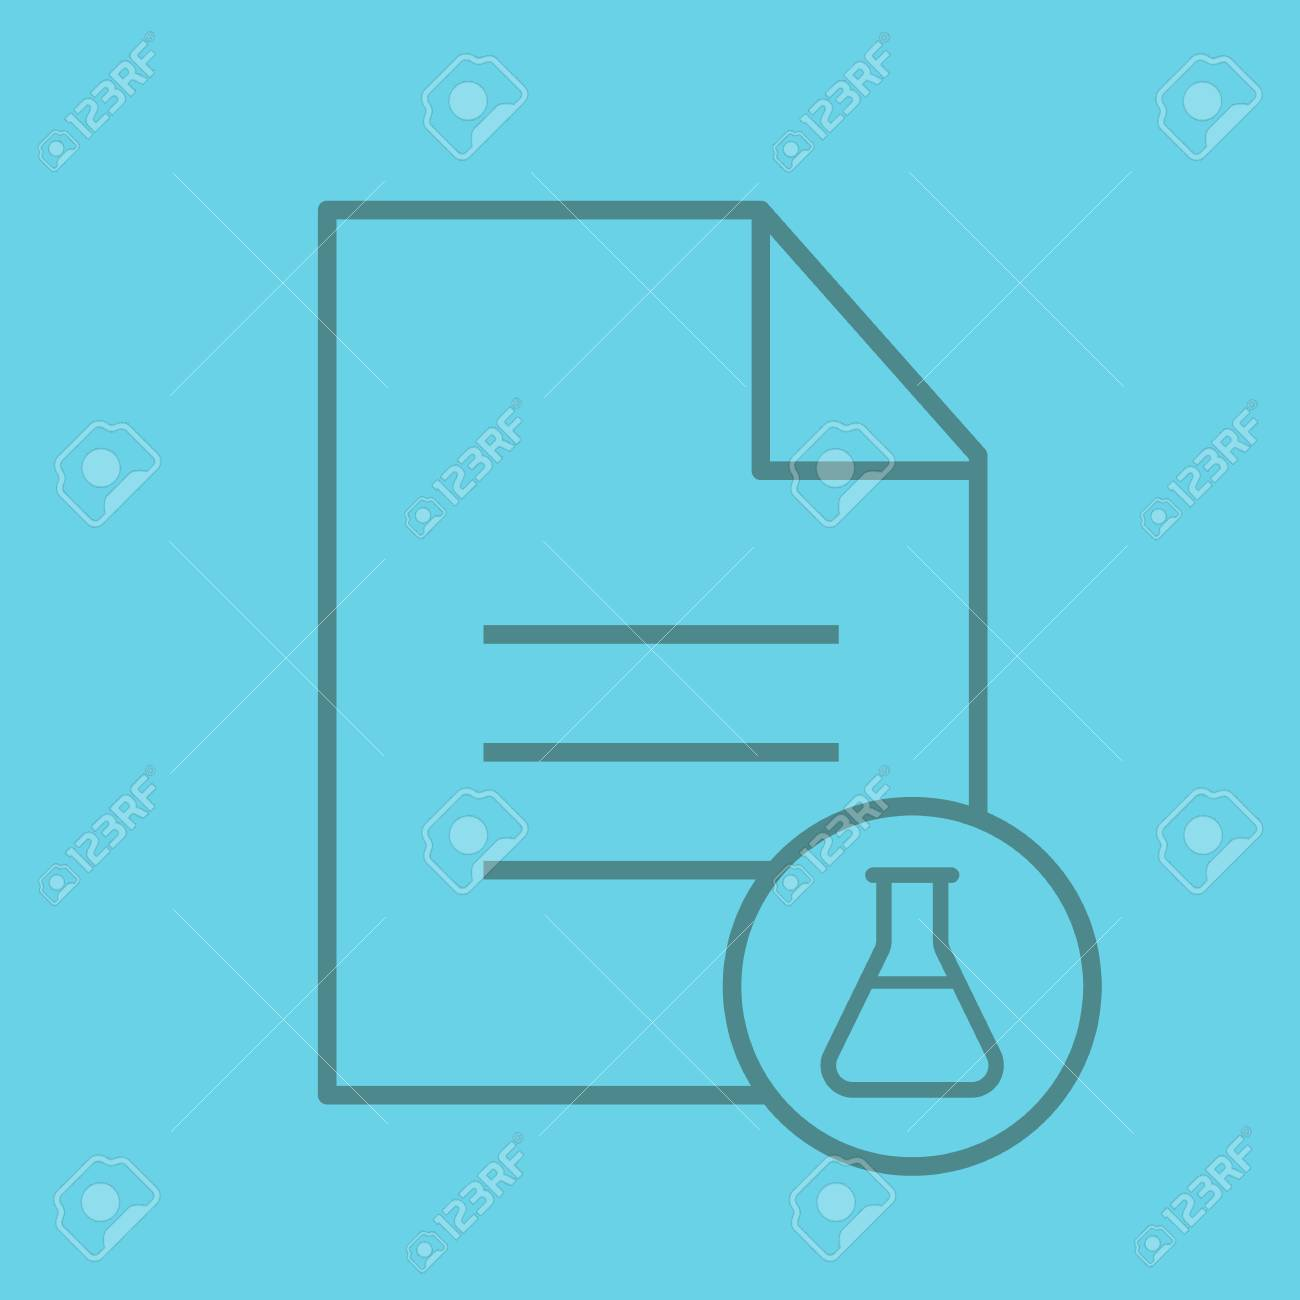 Medical Test Results Color Linear Icon Text Document With Lab